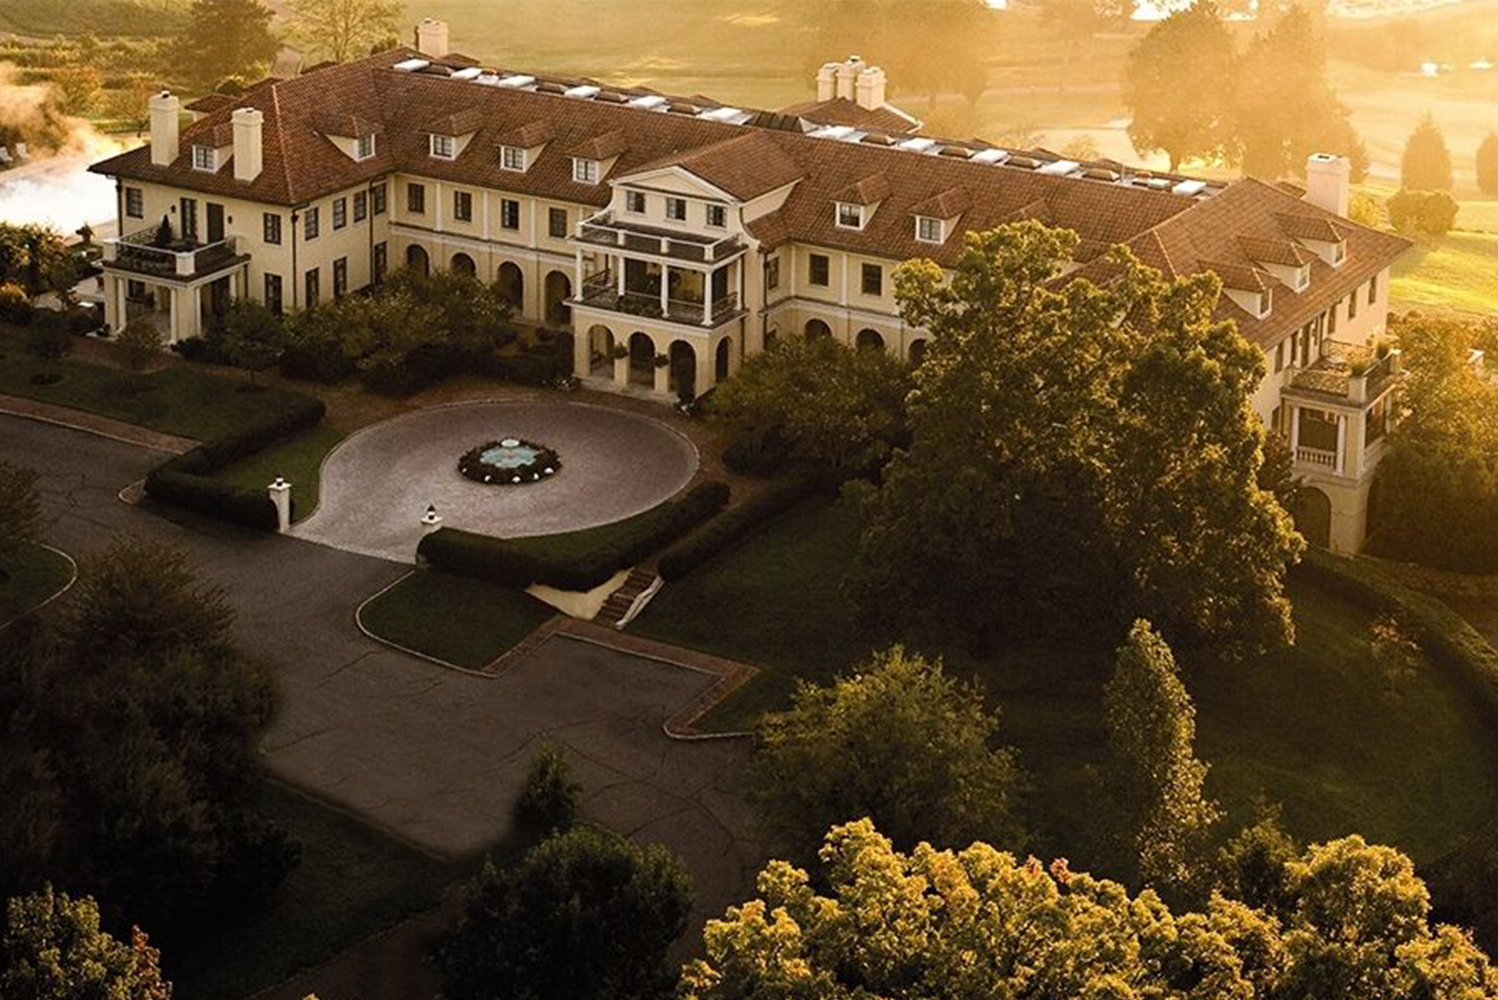 The 600-acre luxury resort will begin a major renovation of its 48-room hotel owned by Robert and Molly Hardie in early January 2018.